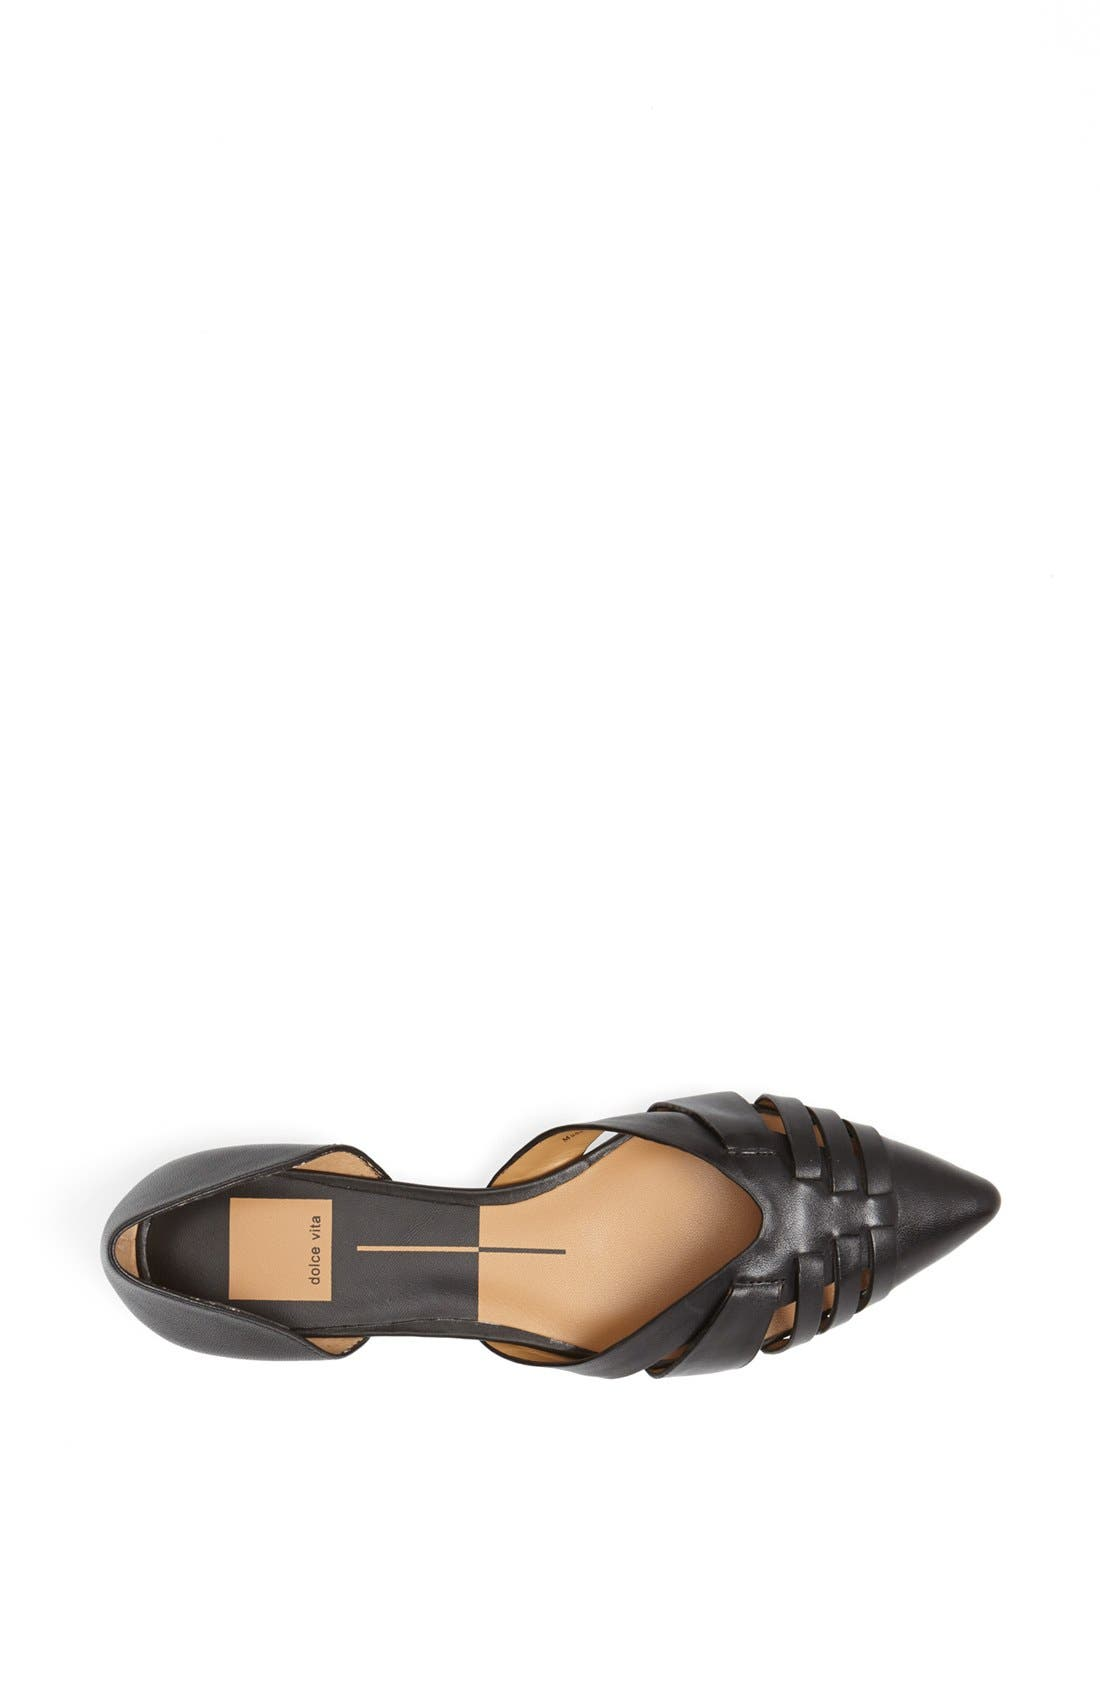 Alternate Image 3  - Dolce Vita 'Alpha' Leather Flat Sandal